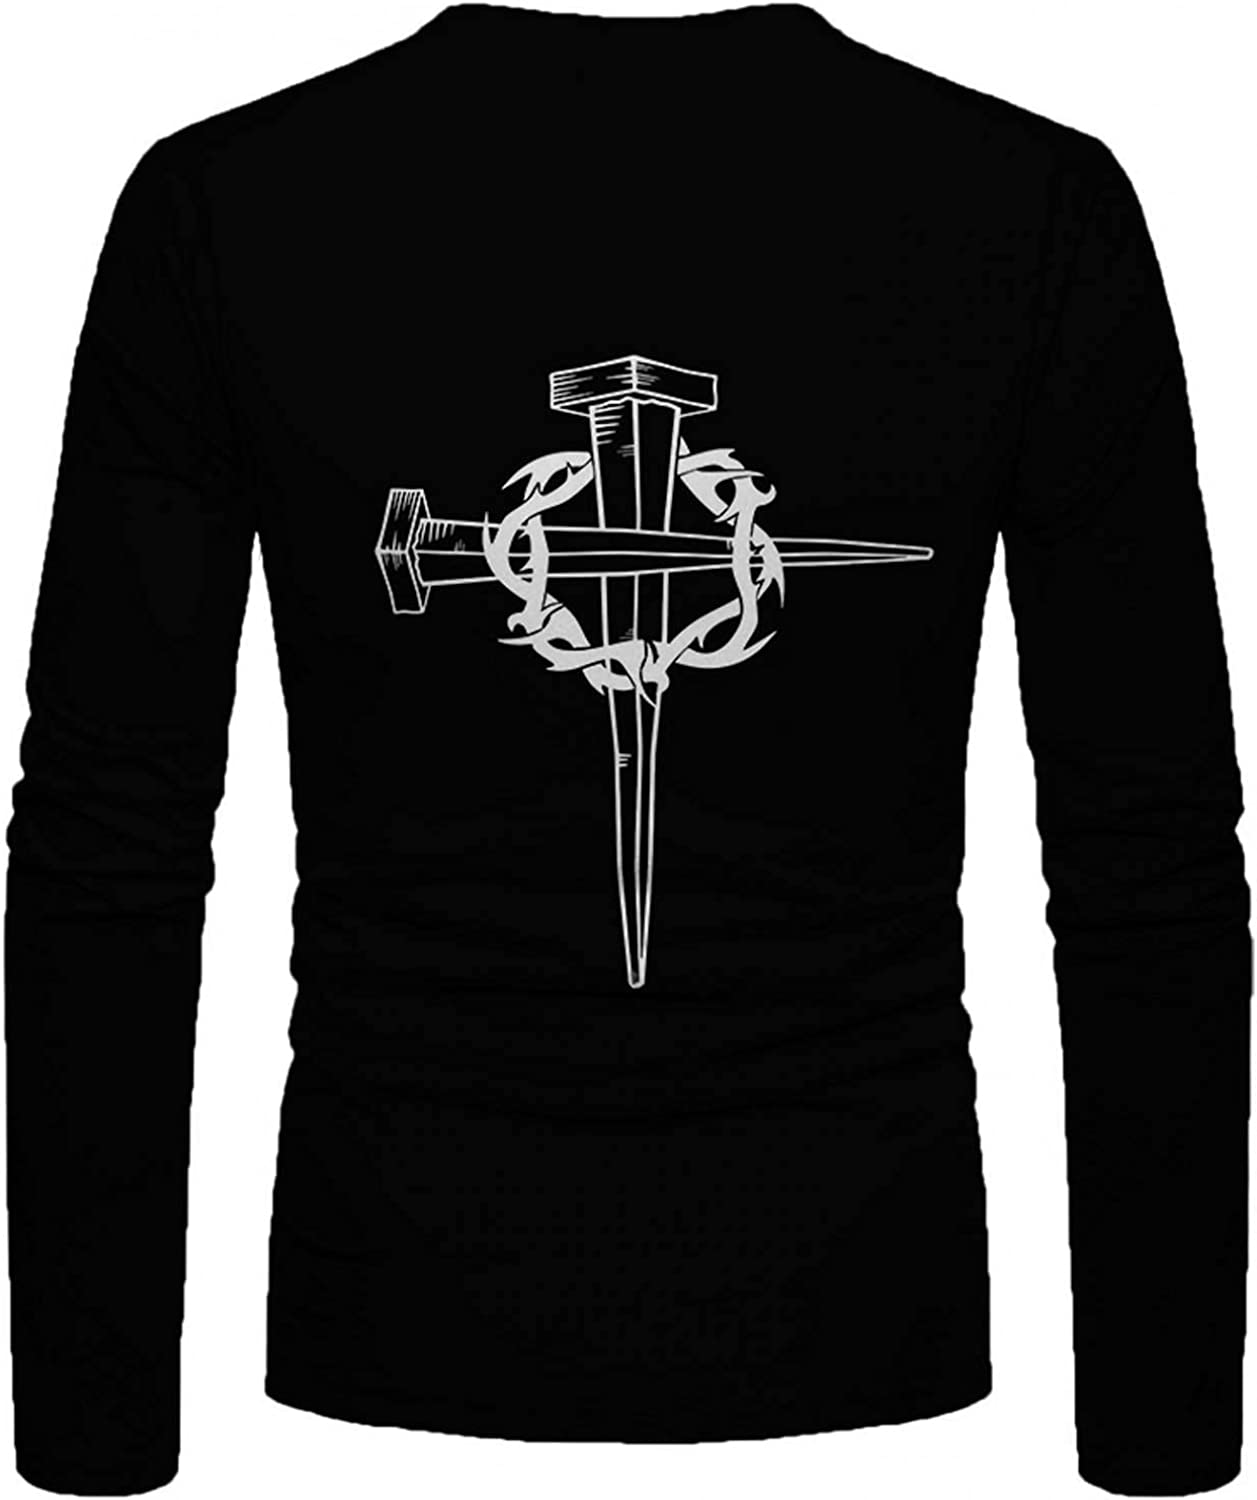 Tops for Mens Casual Stylish Faith Jesus Cross Print Graphic T Shirts Long Sleeve Crewneck Pullover Tops